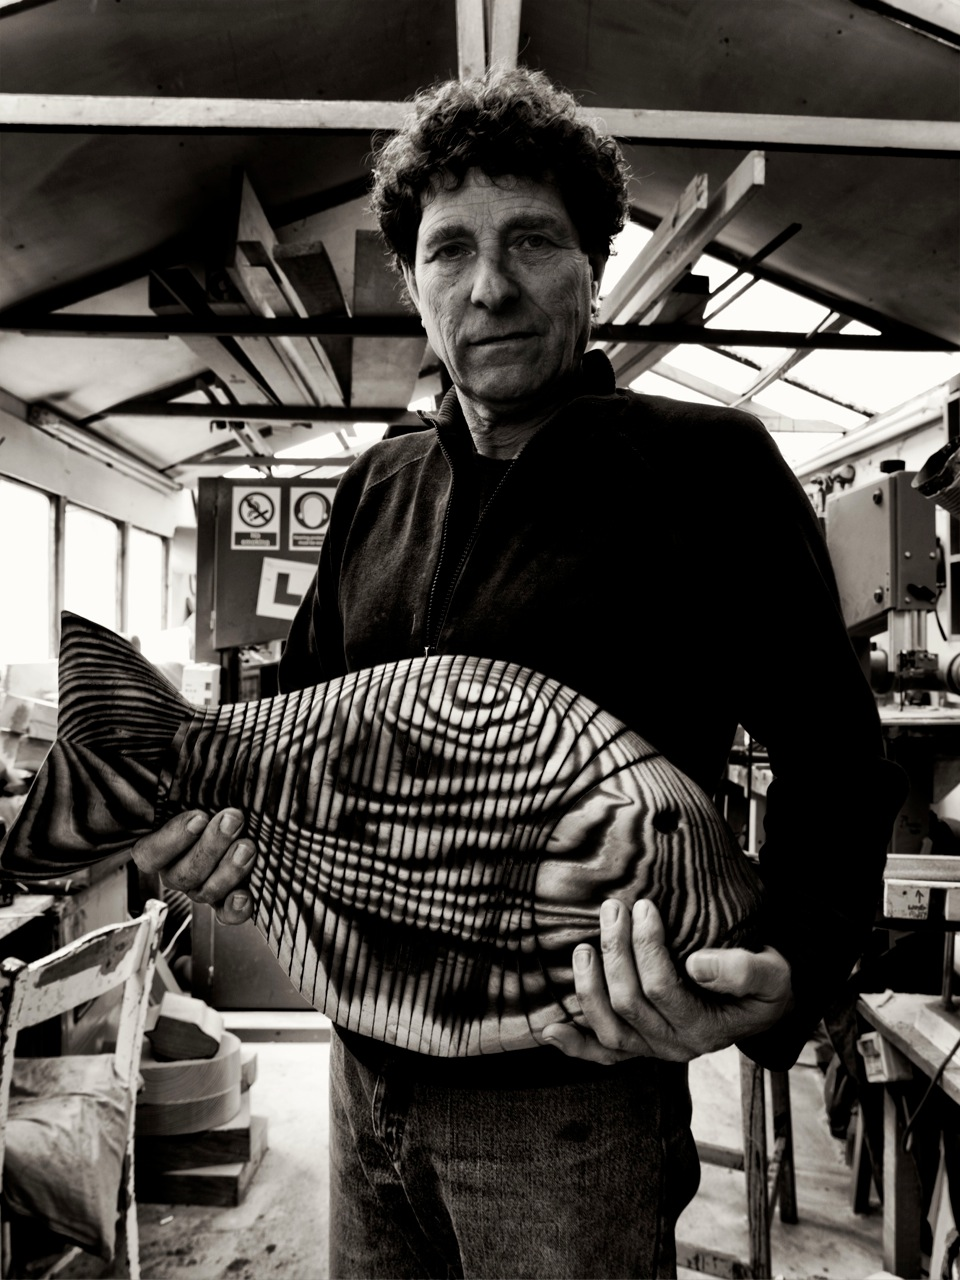 jeff soan with fish